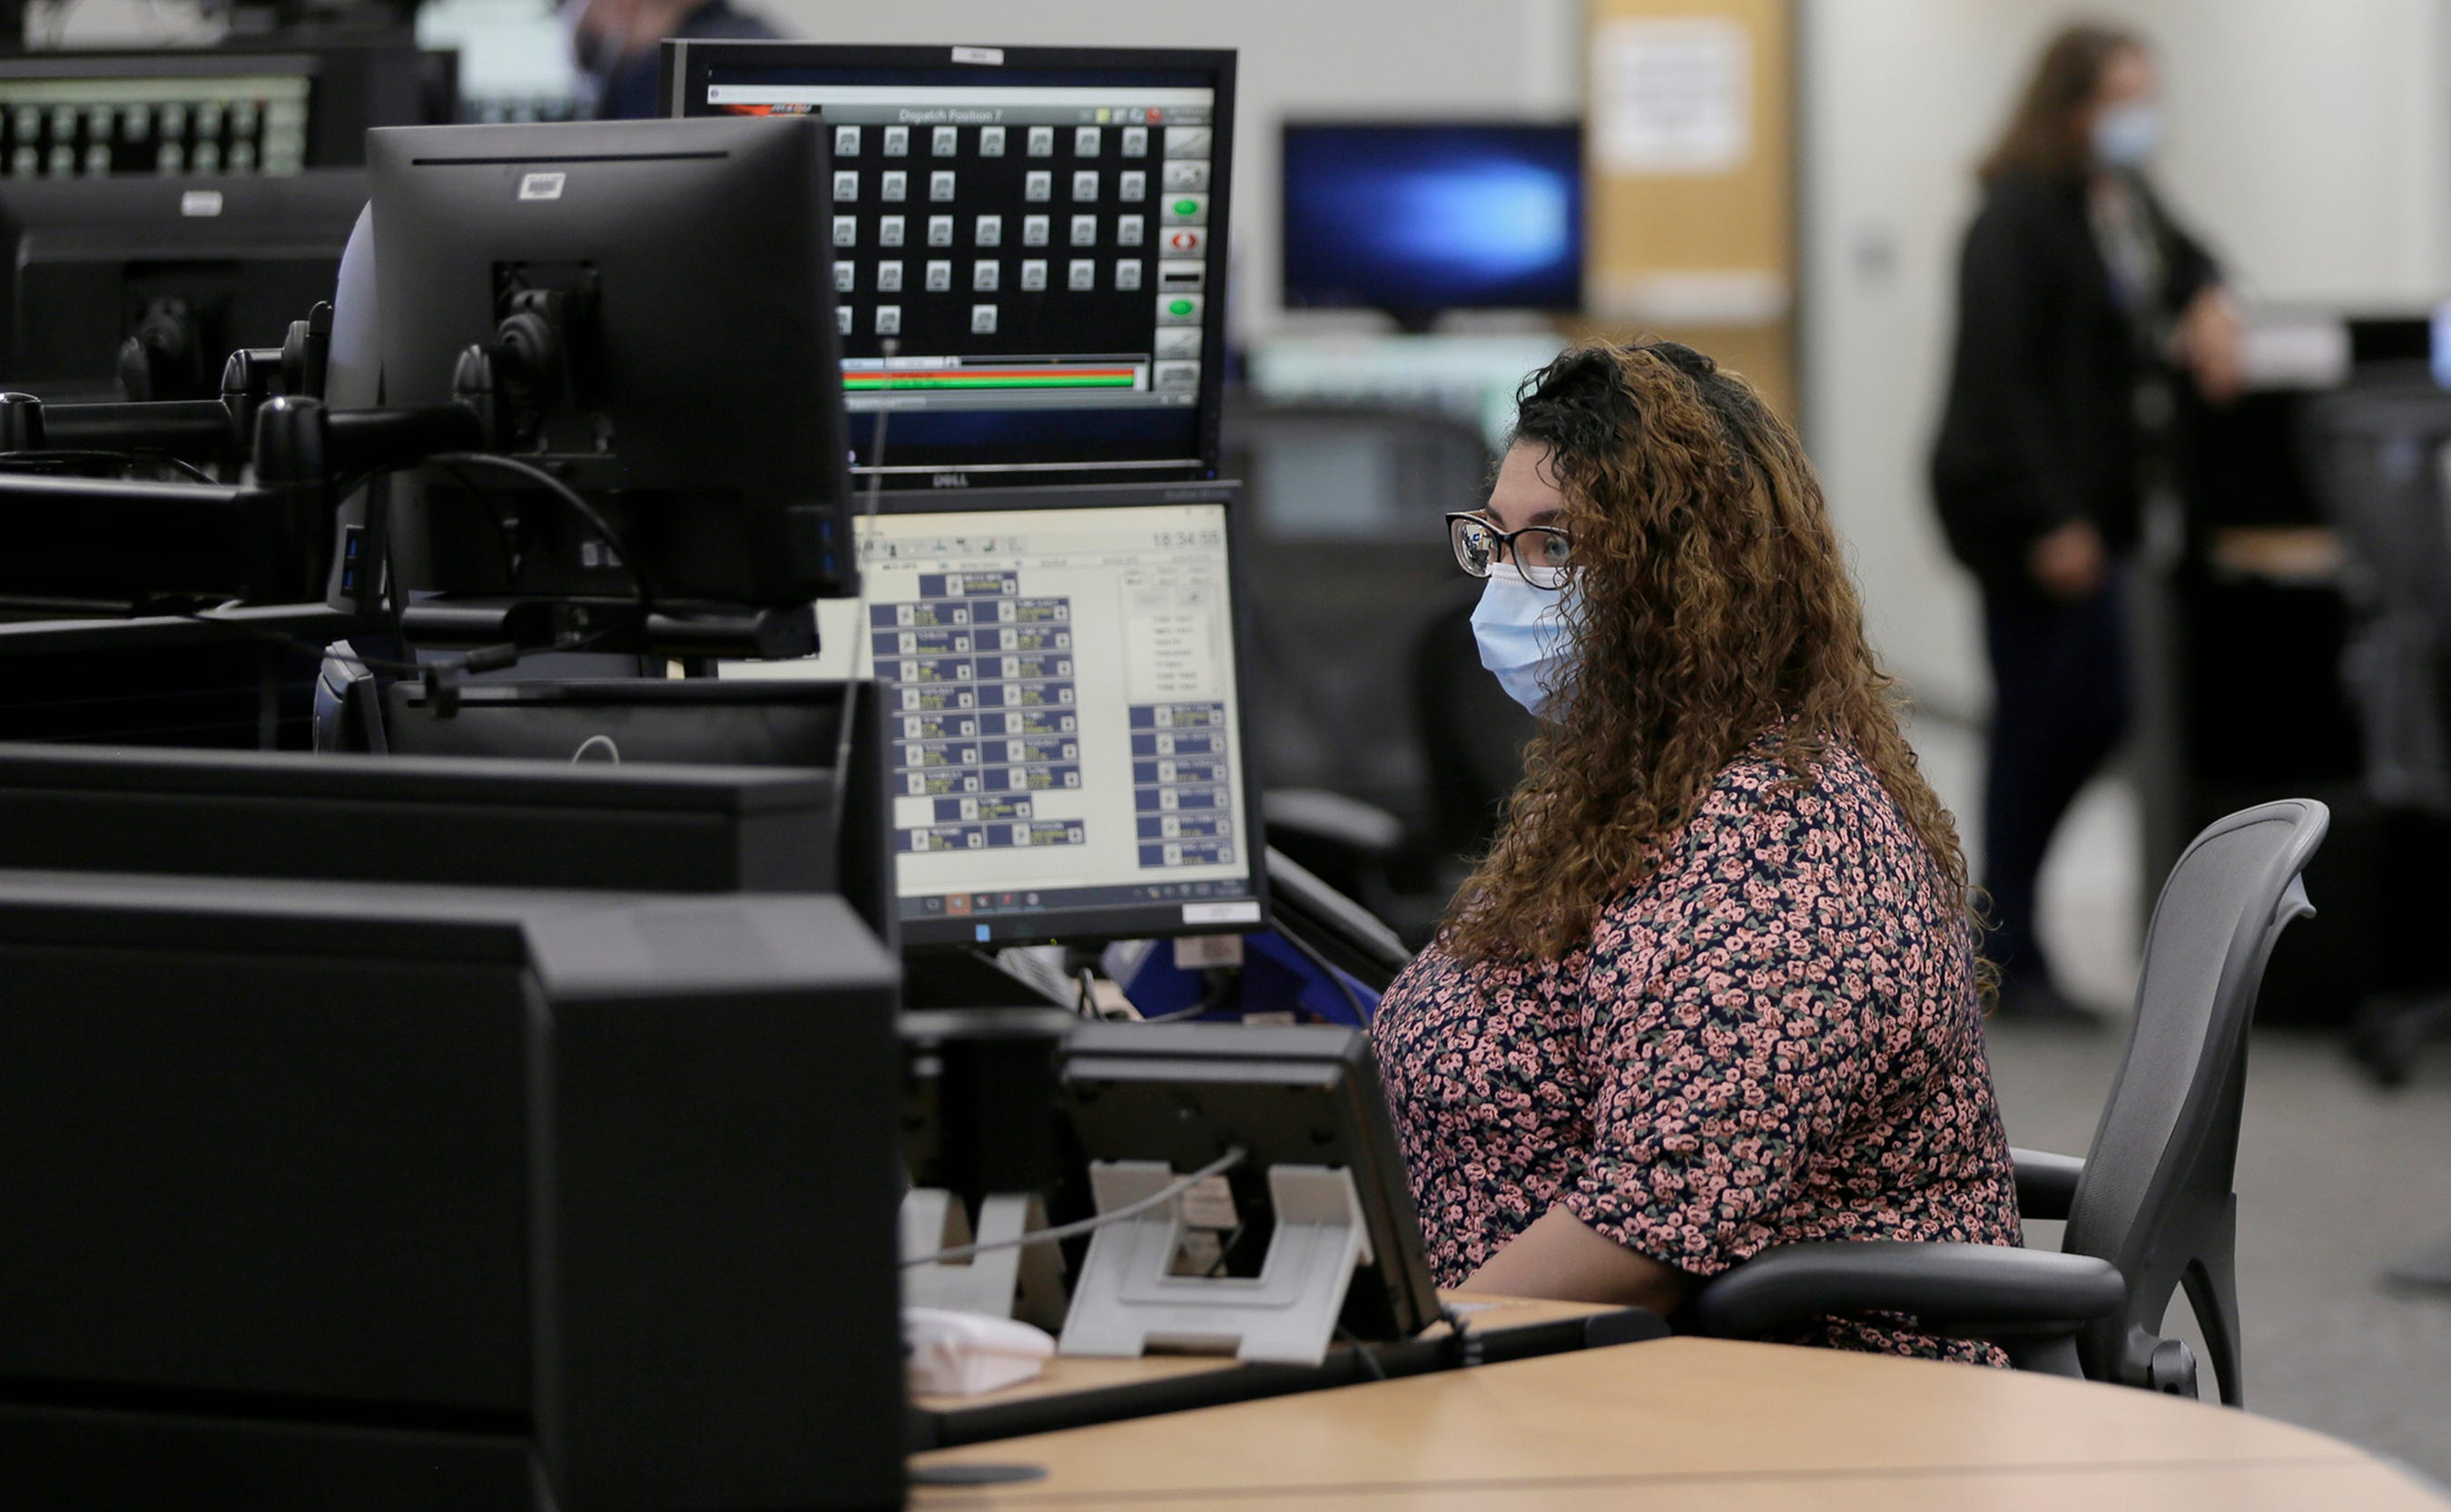 El Paso 911 Fire Dispatcher Jacqueline Castro worked Aug. 3, during the Walmart mass shooting.